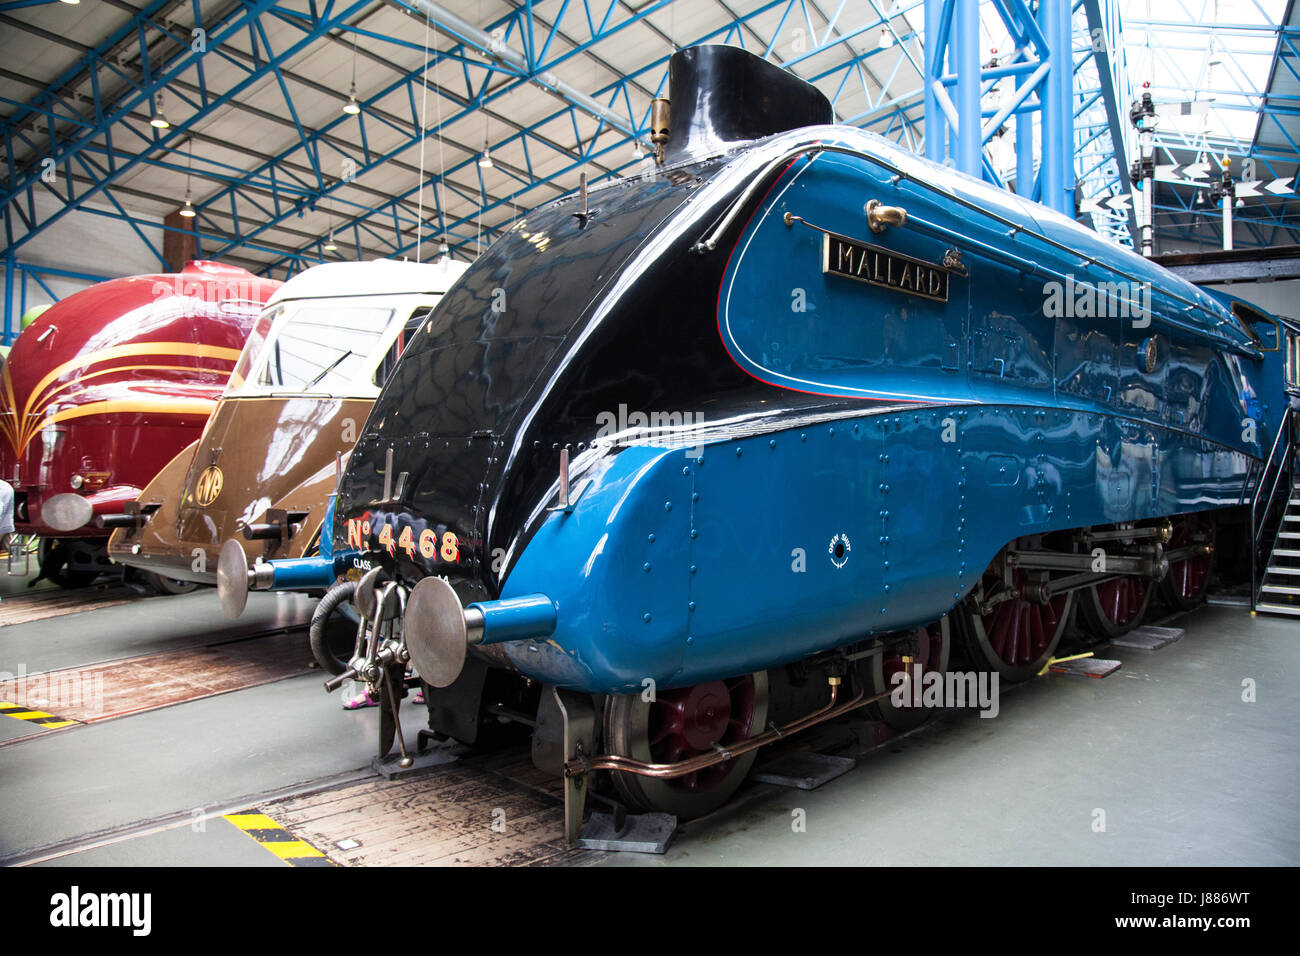 The Mallard Steam Train that on 3rd July 1938 achieved the world speed record for steam traction of 126 mph National - Stock Image